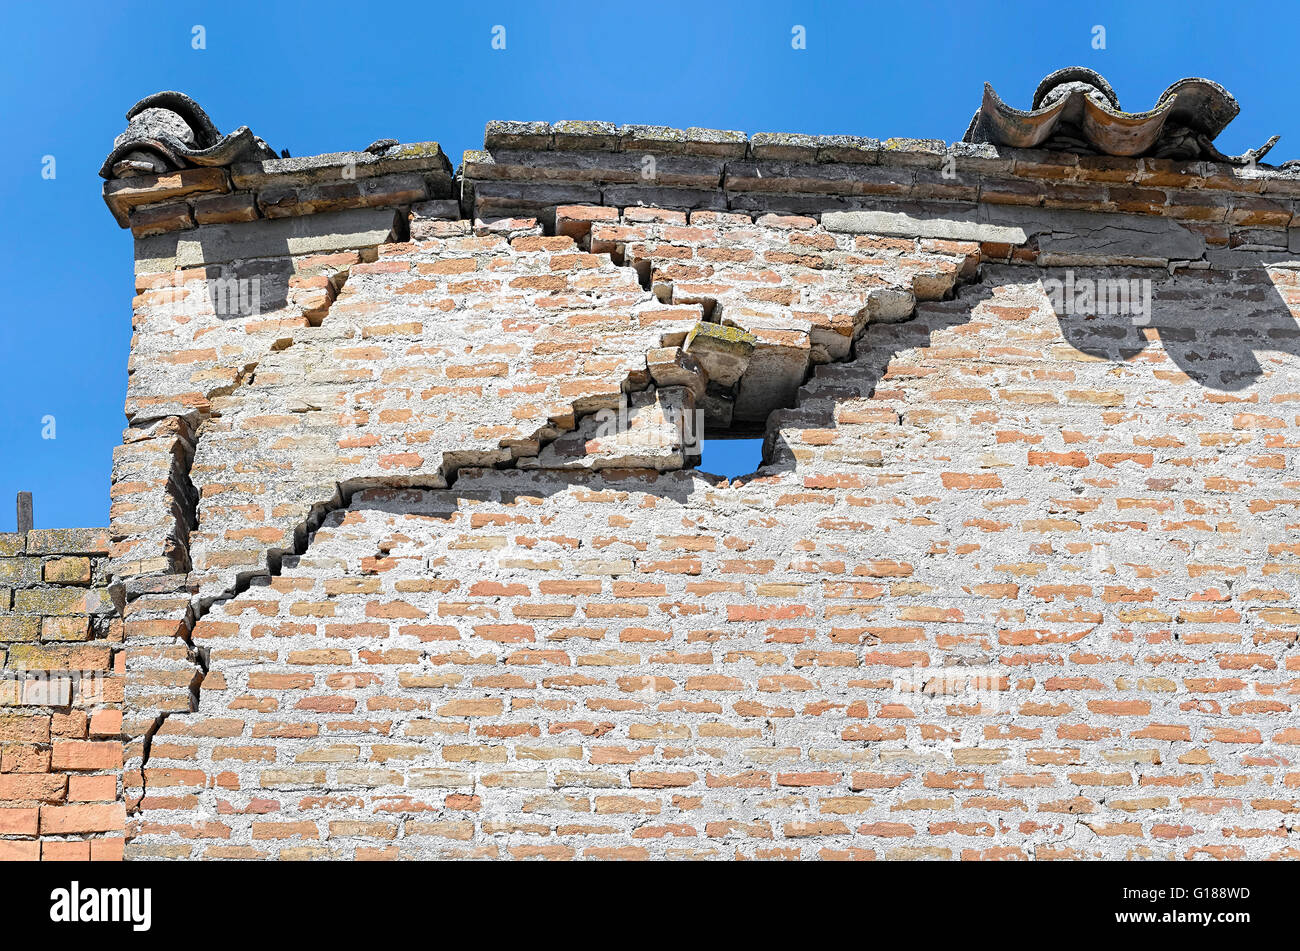 Wall damaged and broken. Building in ruins. Facade dilapidated. Abstract background. Some tiles at roof. - Stock Image